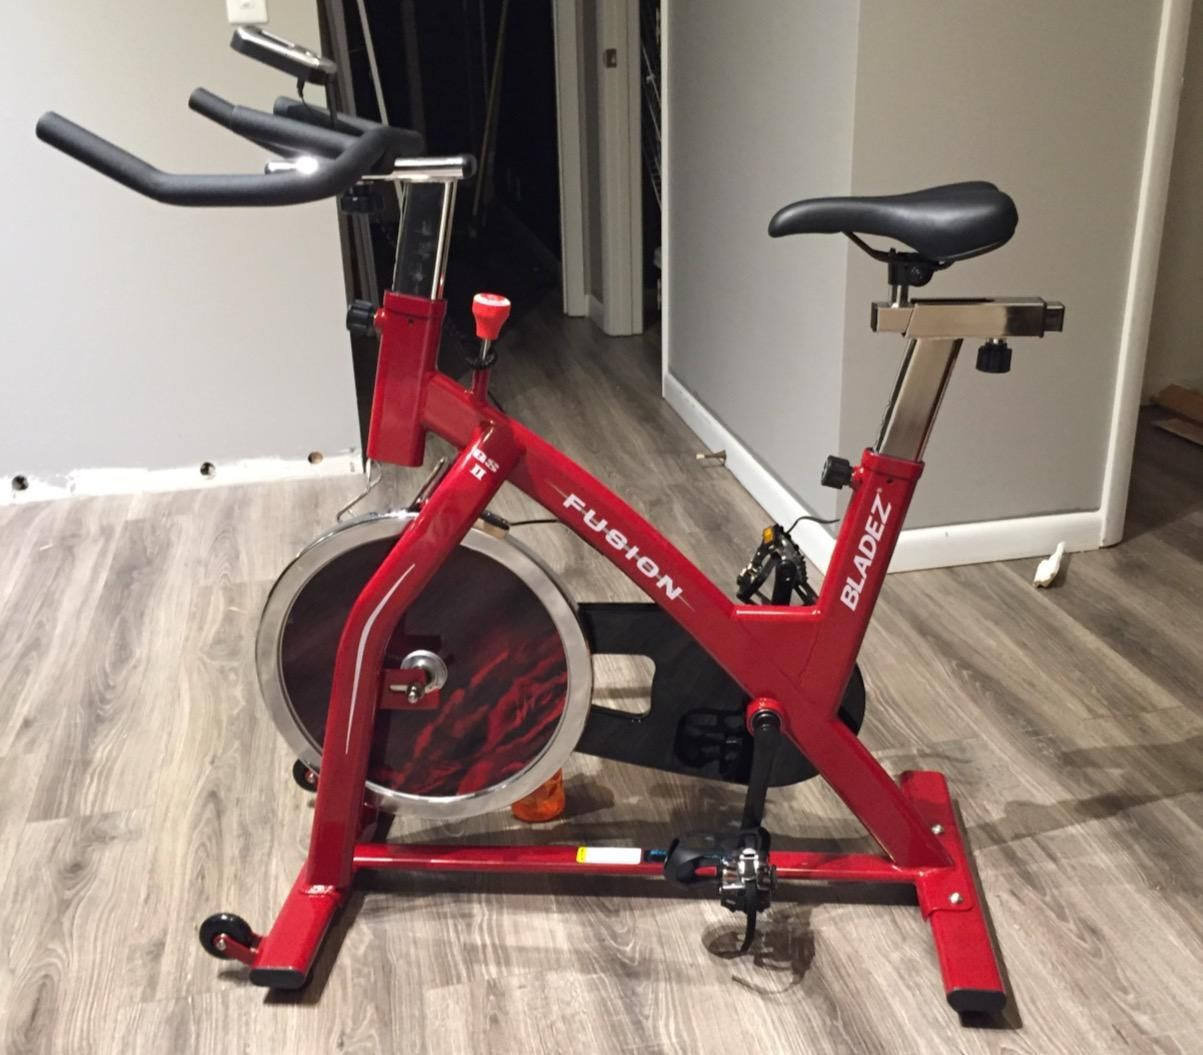 Best Spin Bike Reviews In 2020 Spin Bikes Indoor Spin Bike Spin Bike Reviews